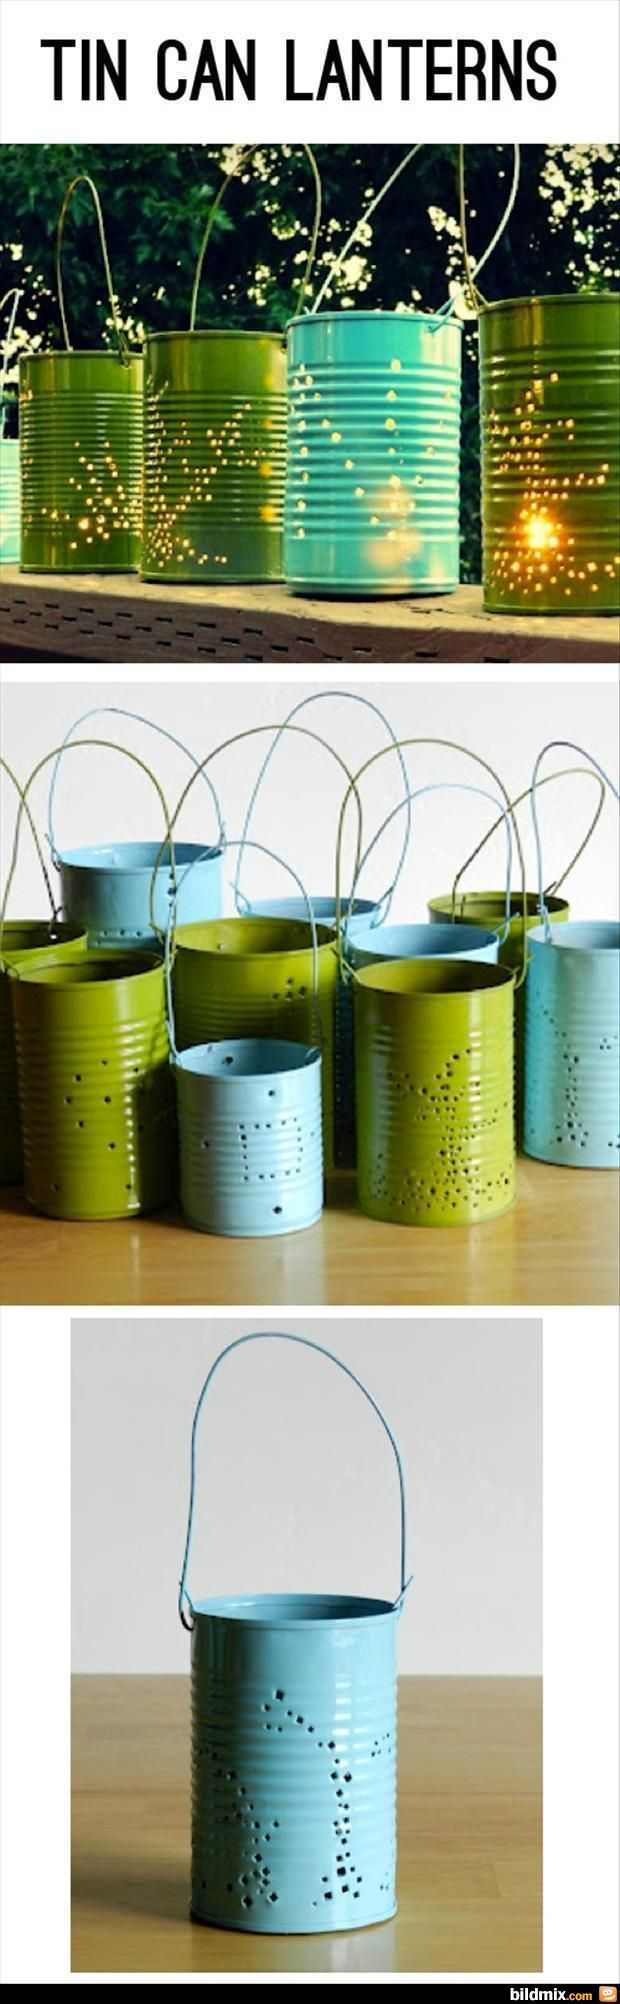 30 DIY Creative Ideas That Can Inspire You... Great lighting idea for an evening outdoor BBQ or get together!